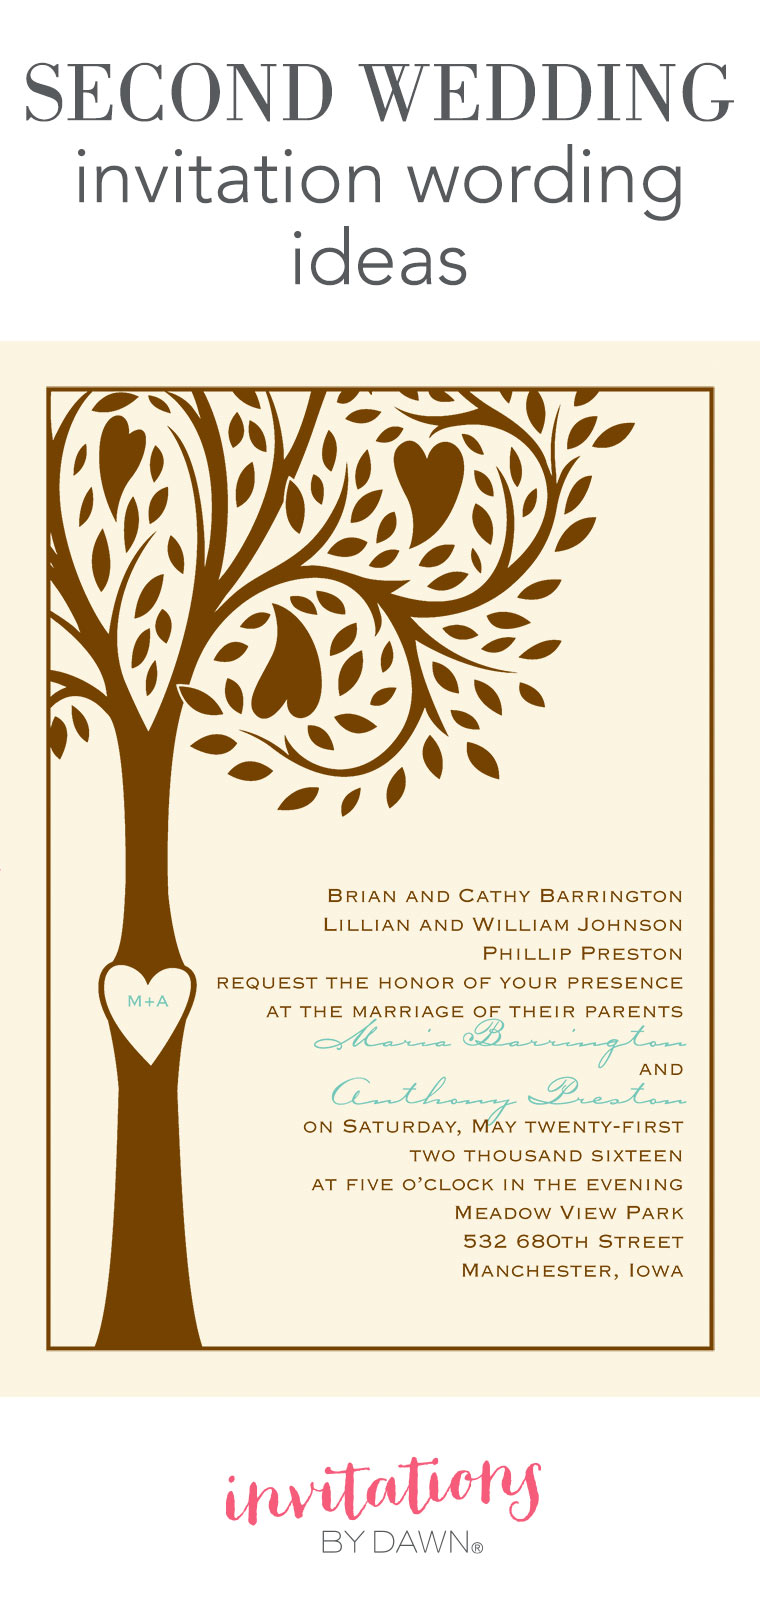 Wonderful Second Wedding Invitation Wording